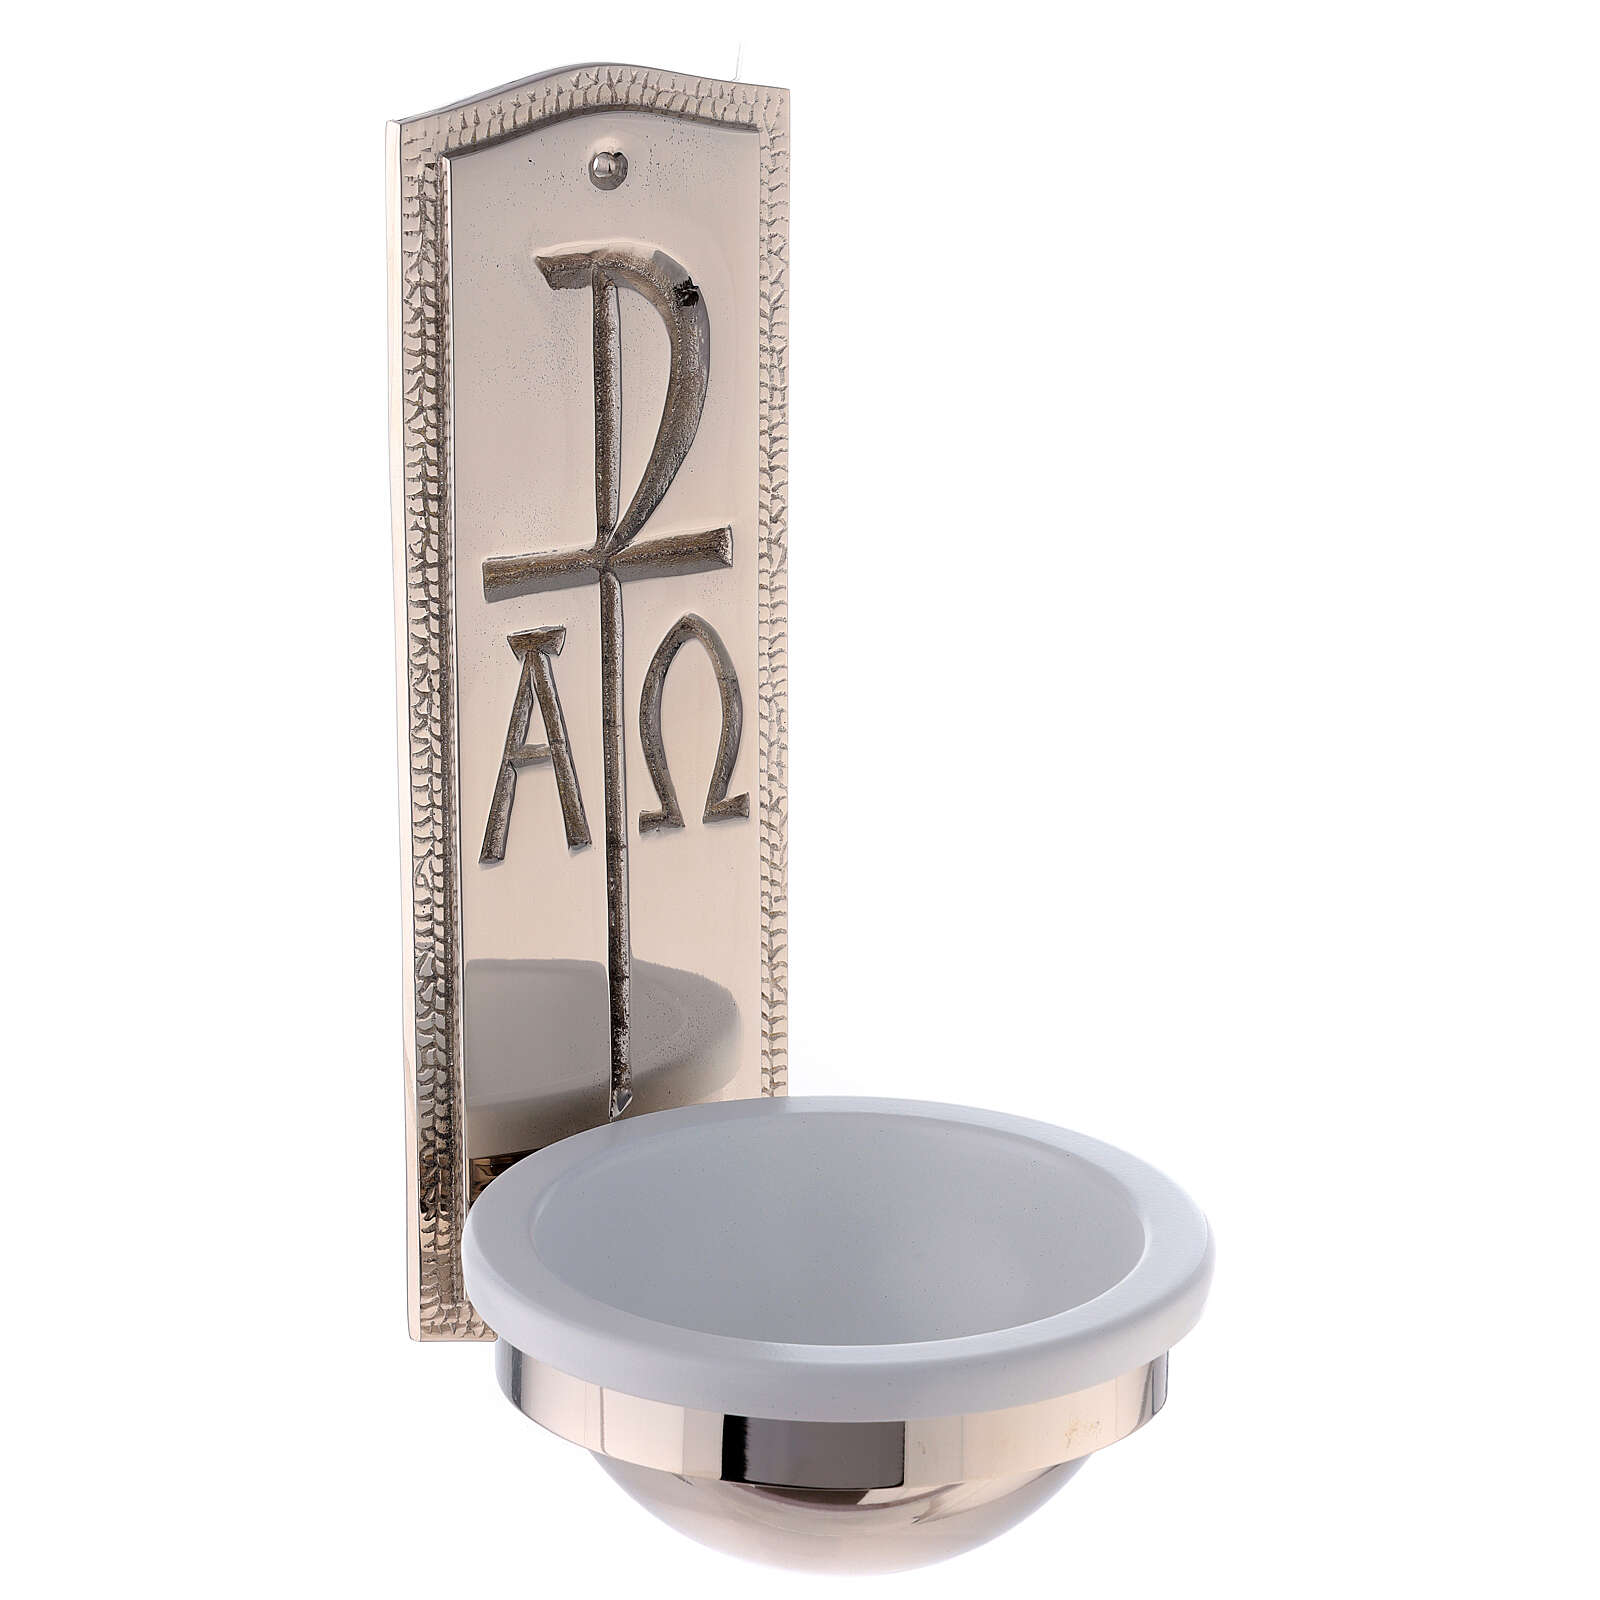 Nickel-plated brass Holy water font with Chi-Rho Alpha Omega 10 in 4